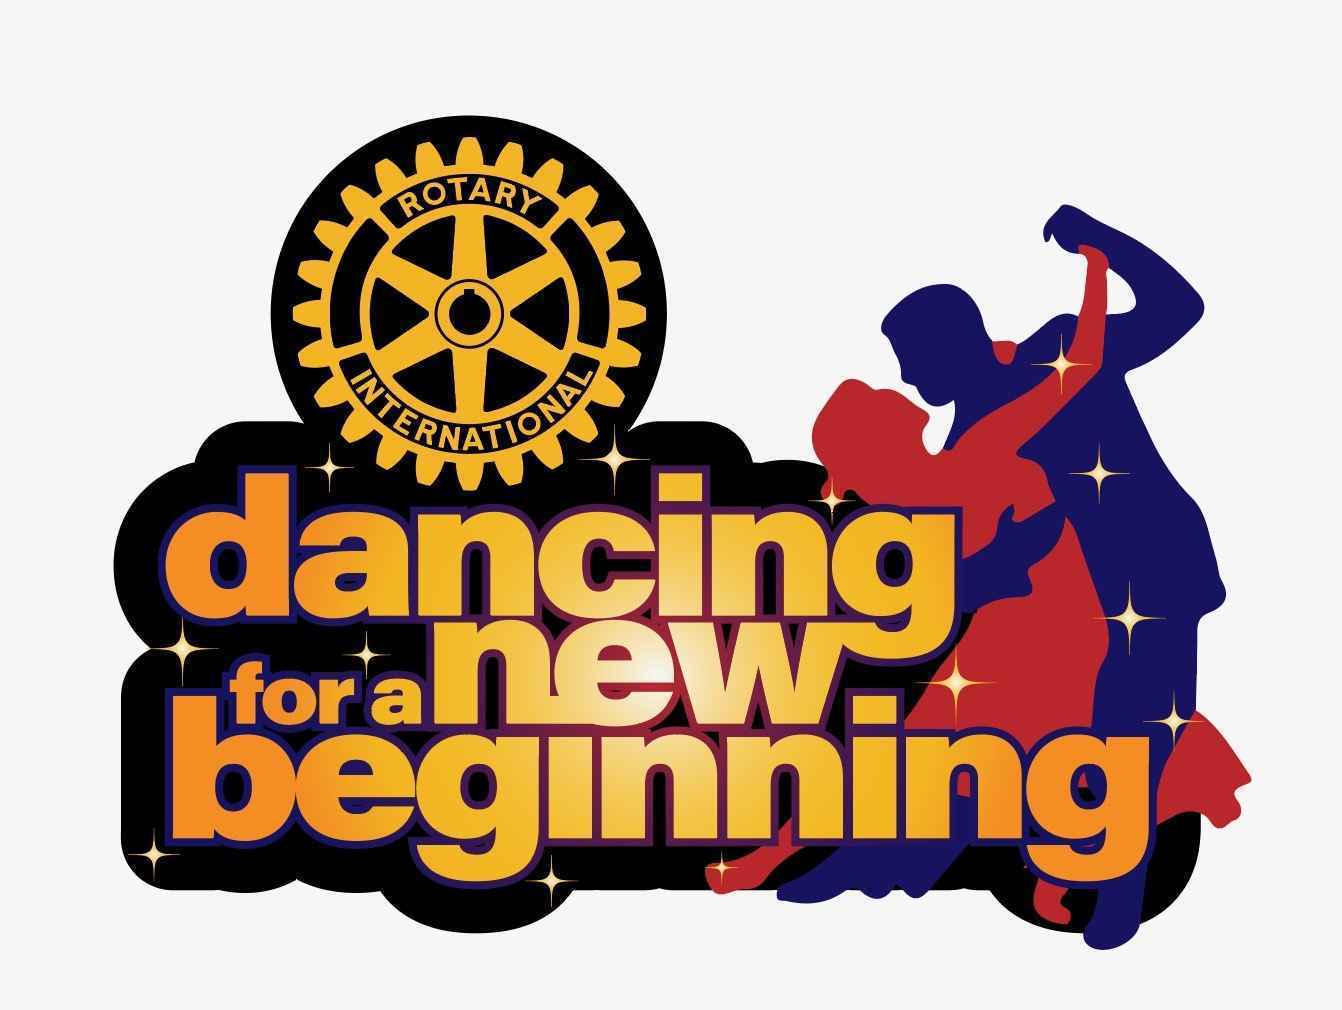 Dancing for a New Beginning image